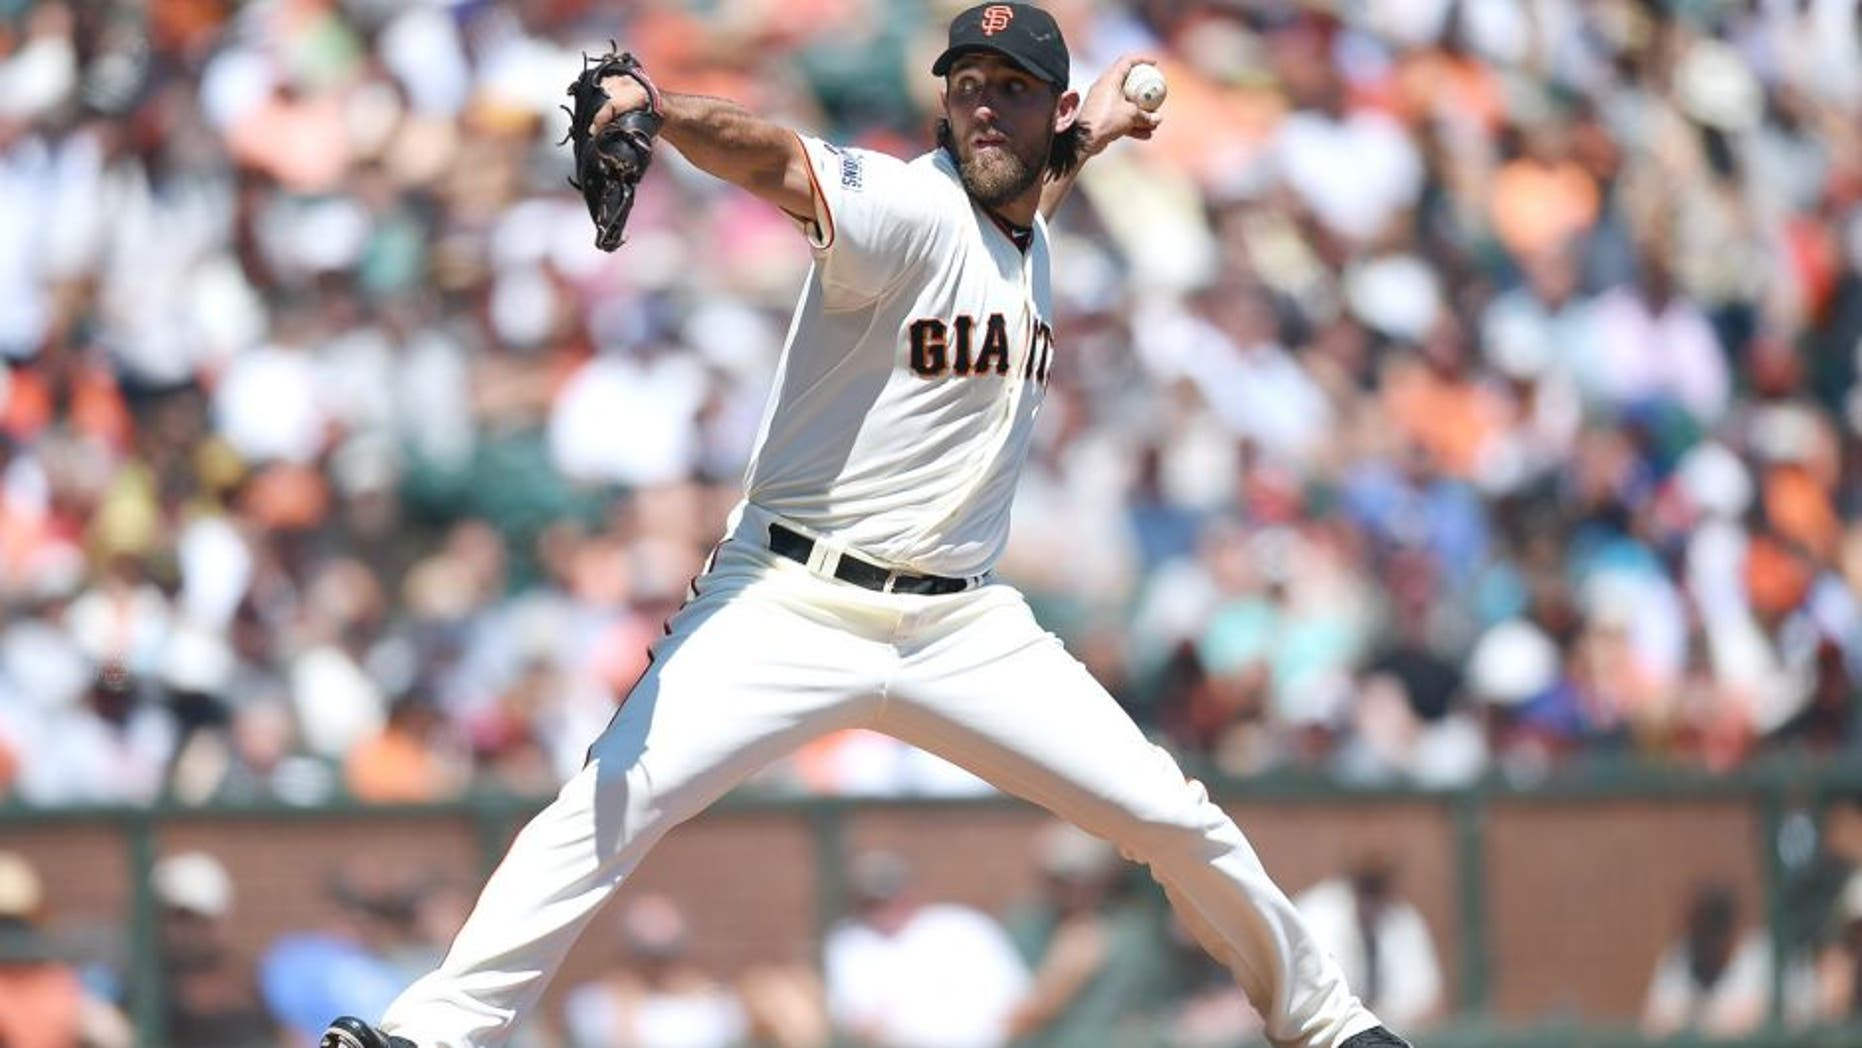 SAN FRANCISCO, CA - AUGUST 27: Madison Bumgarner #40 of the San Francisco Giants pitches against the Chicago Cubs in the top of the second inning at AT&T Park on August 27, 2015 in San Francisco, California. (Photo by Thearon W. Henderson/Getty Images)